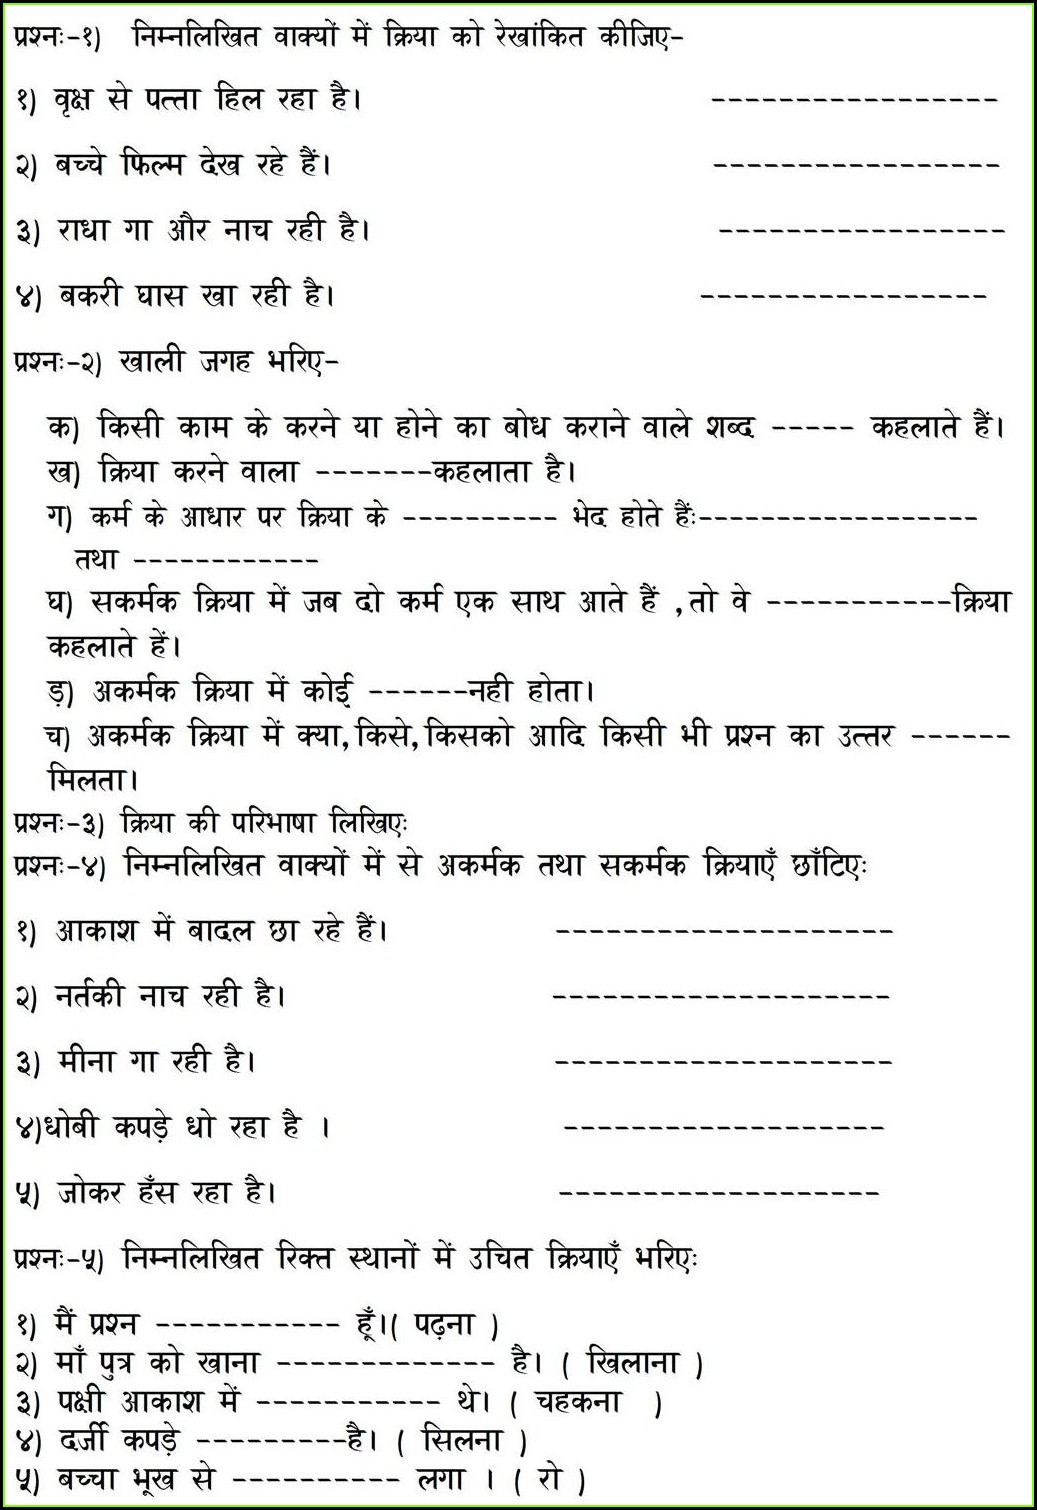 Hindi Grammar Kriya Worksheet For Class 5